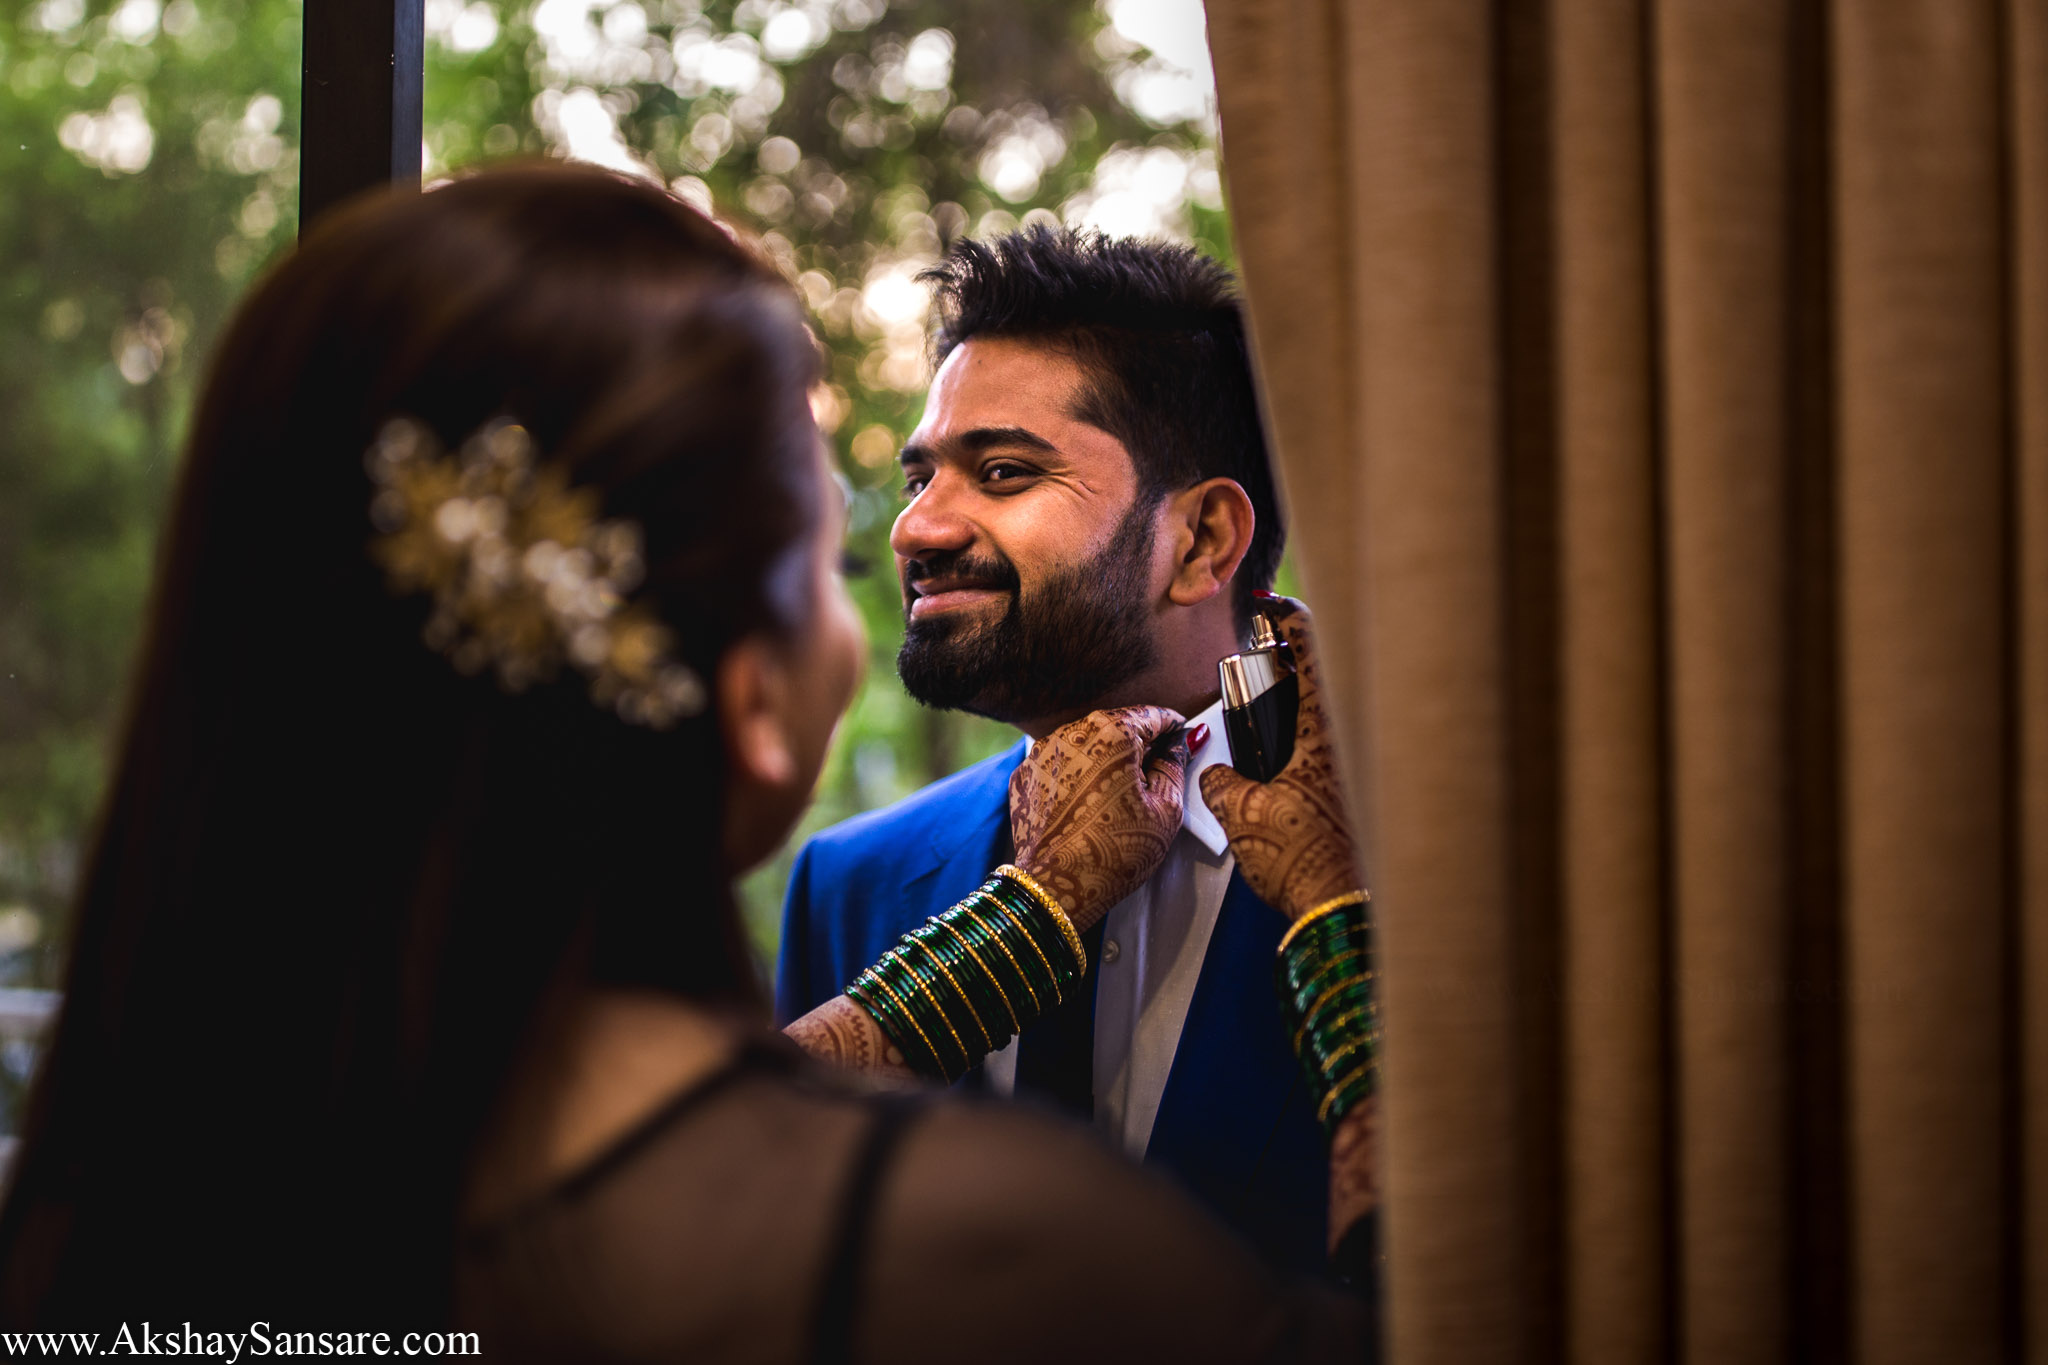 Ajay & Devika Akshay Sansare Photography Best Candid wedding photographer in mumbai india25.jpg